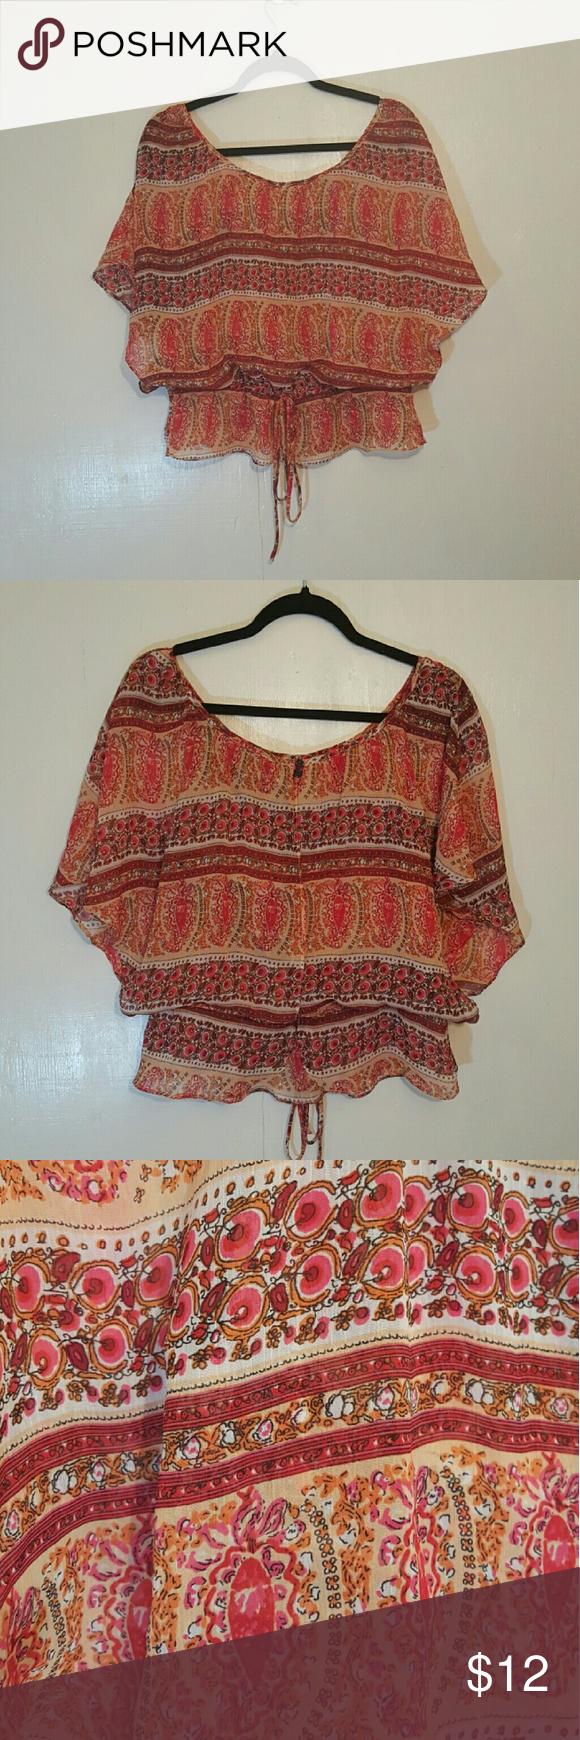 Flowing Summer Blouse Loose fitting blouse. Sinched belted waist. Pink, orange and burgandy. Perfect for hot summer days! Grass Collections Tops Blouses